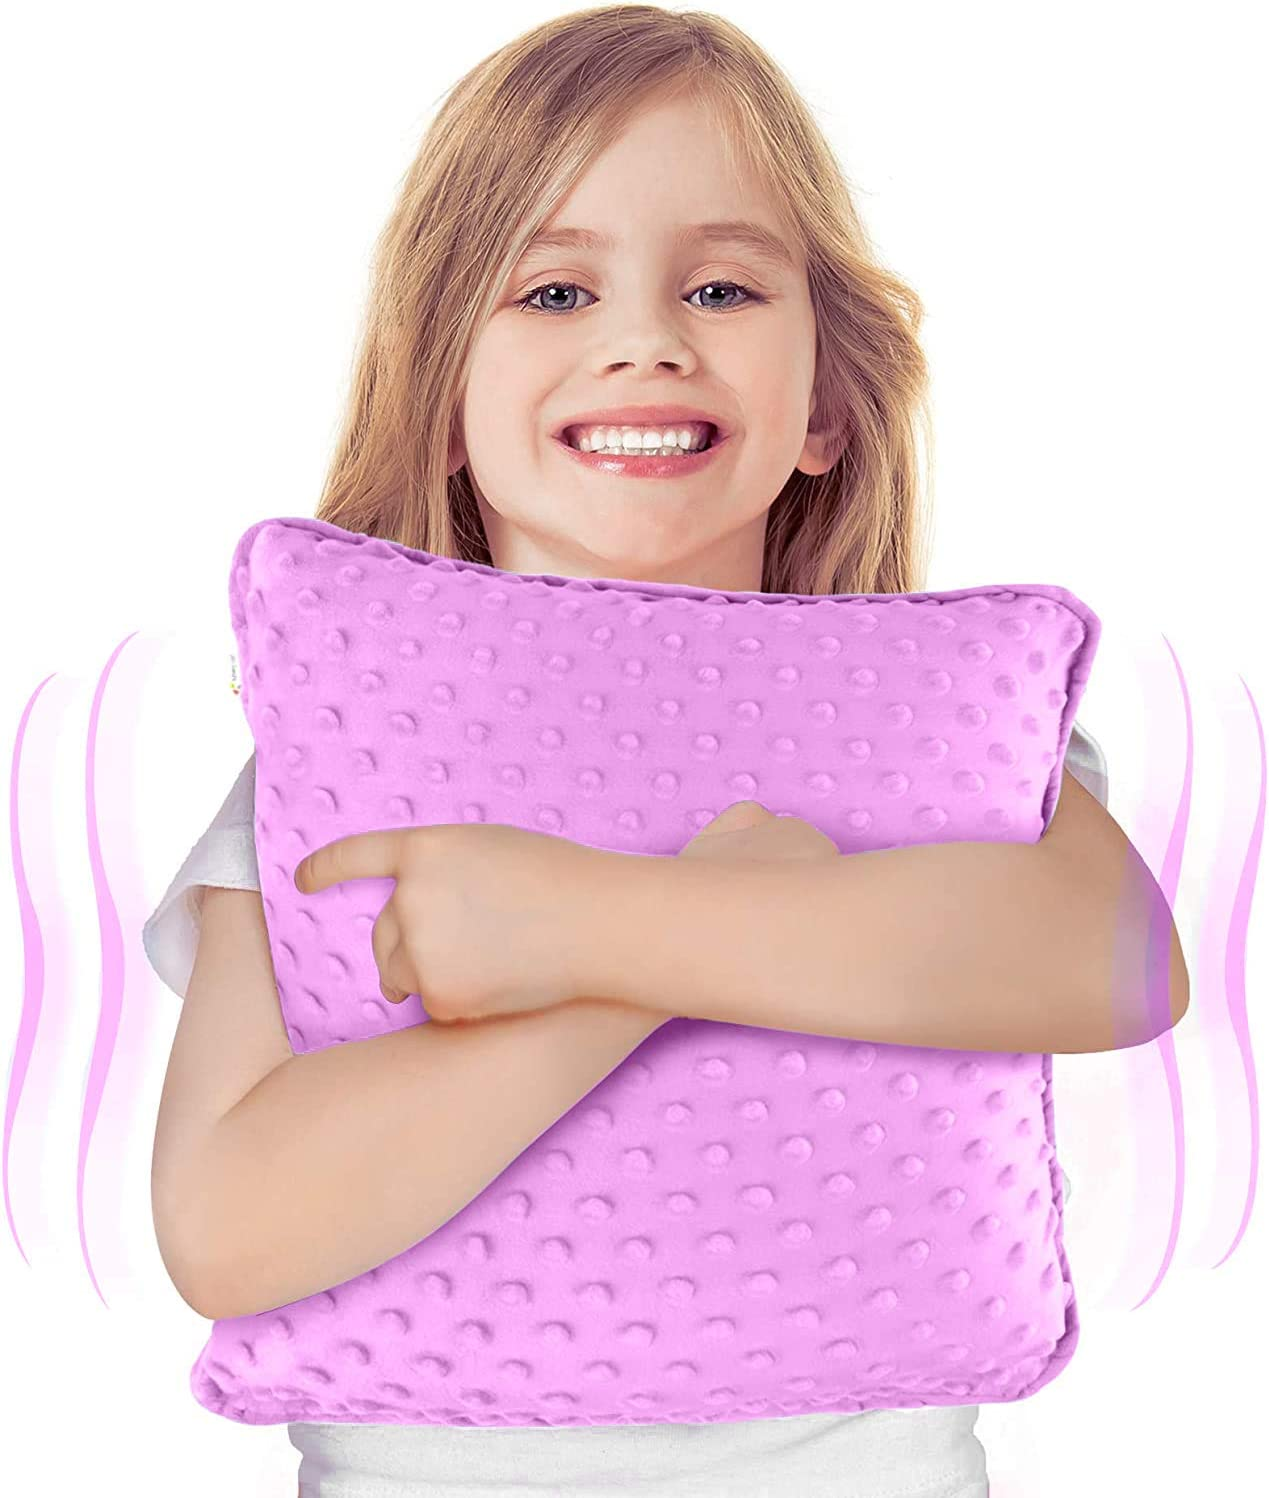 """Special Supplies Vibrating Pillow Sensory Pressure Activated Calm for Kids and Adults, 12"""" x 12"""" Plush Minky Soft Cover with Textured Therapy Stimulation Bumps, Purple : Health & Household"""